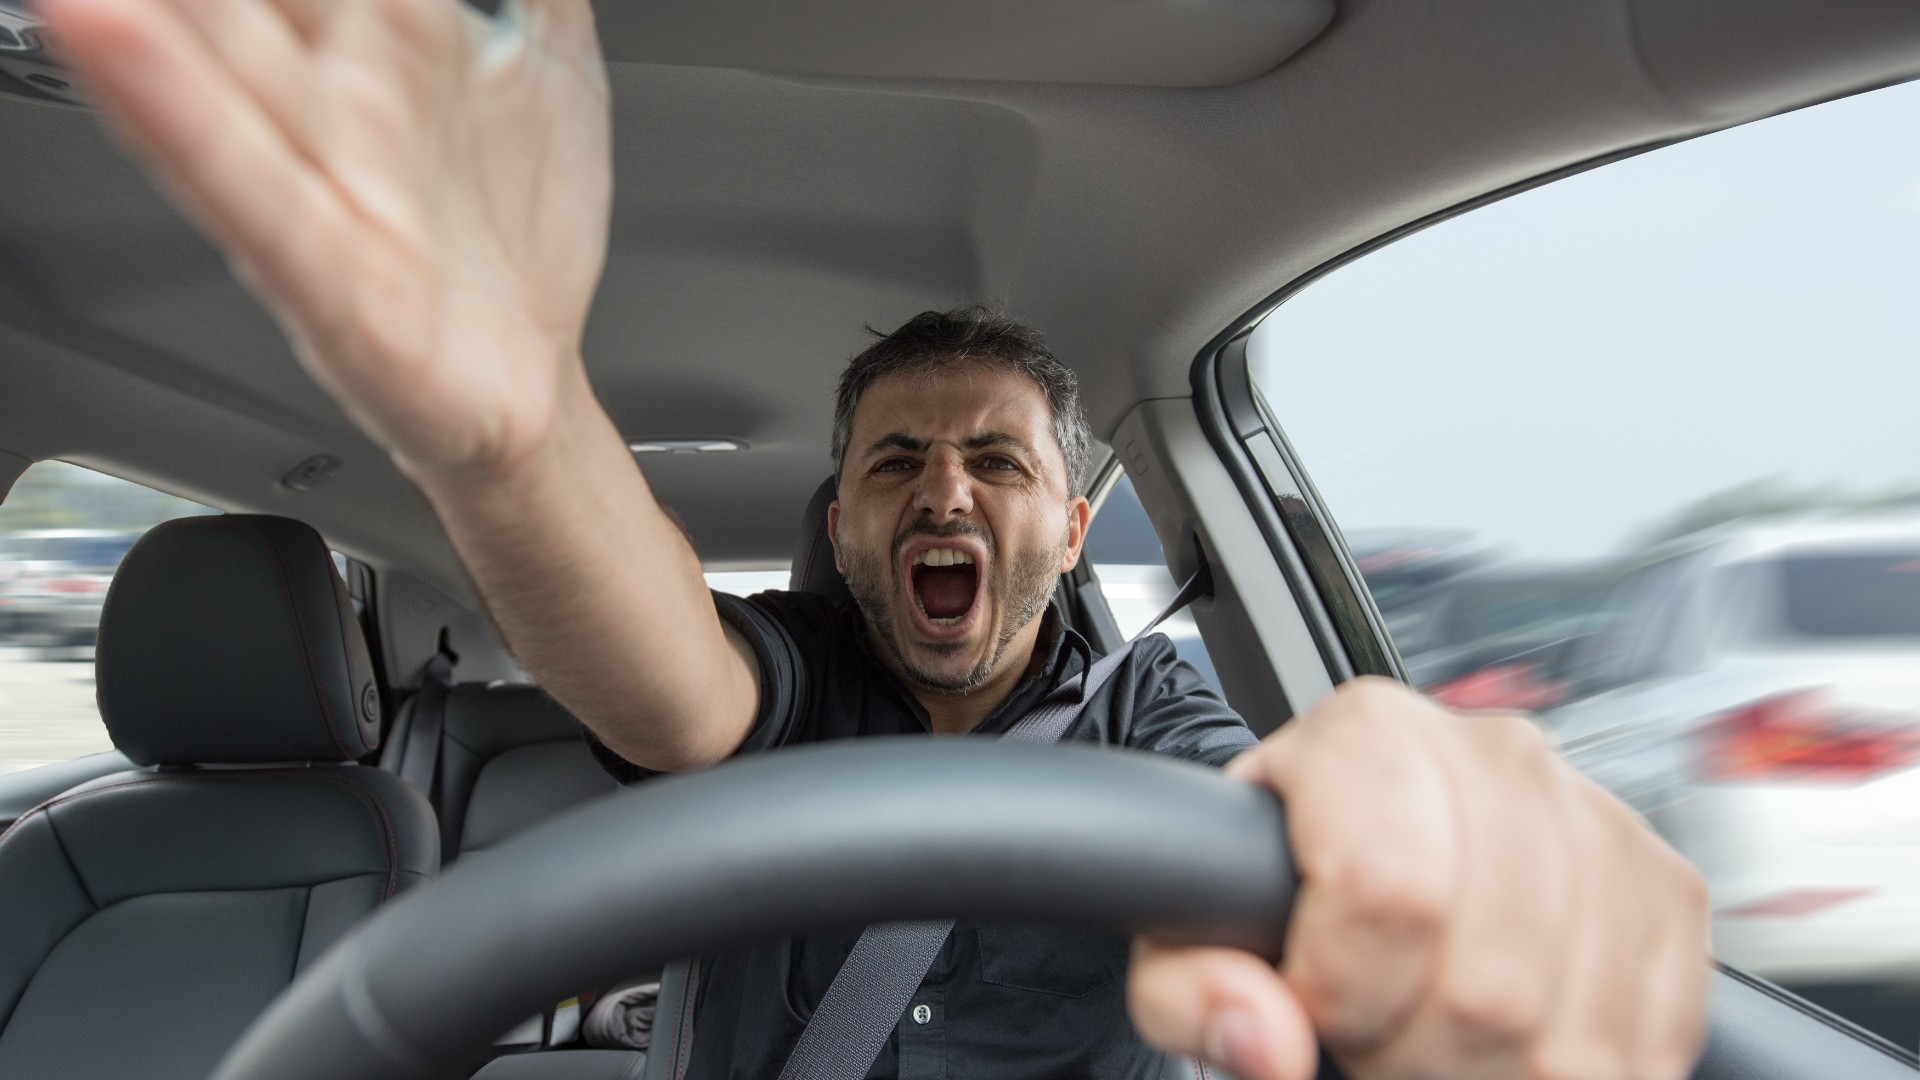 Road rage drivers' pet peeves